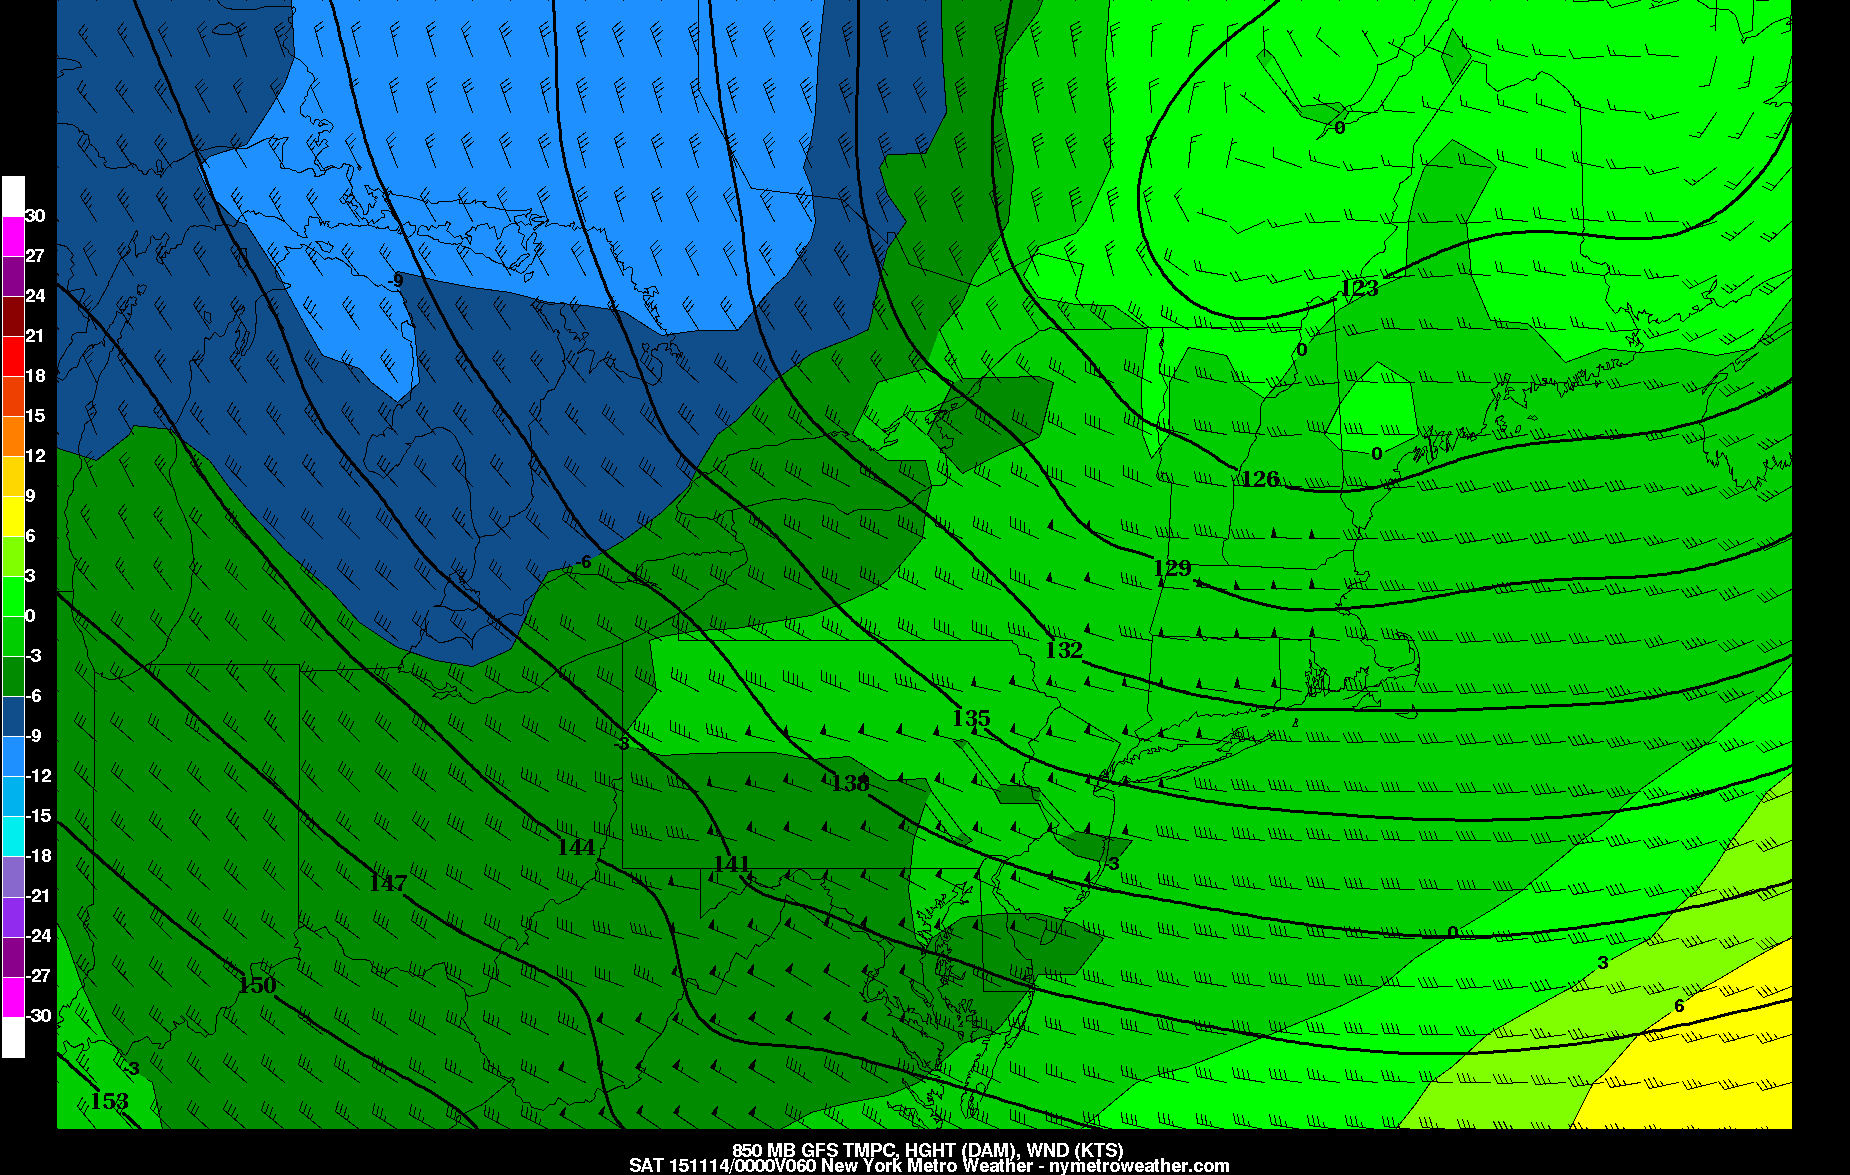 Today's GFS valid for Friday at 7:00pm shows 850mb winds over 50 knots. It also shows a polar airmass moving in from the west, which will make Friday night and Saturday feel quite chilly.